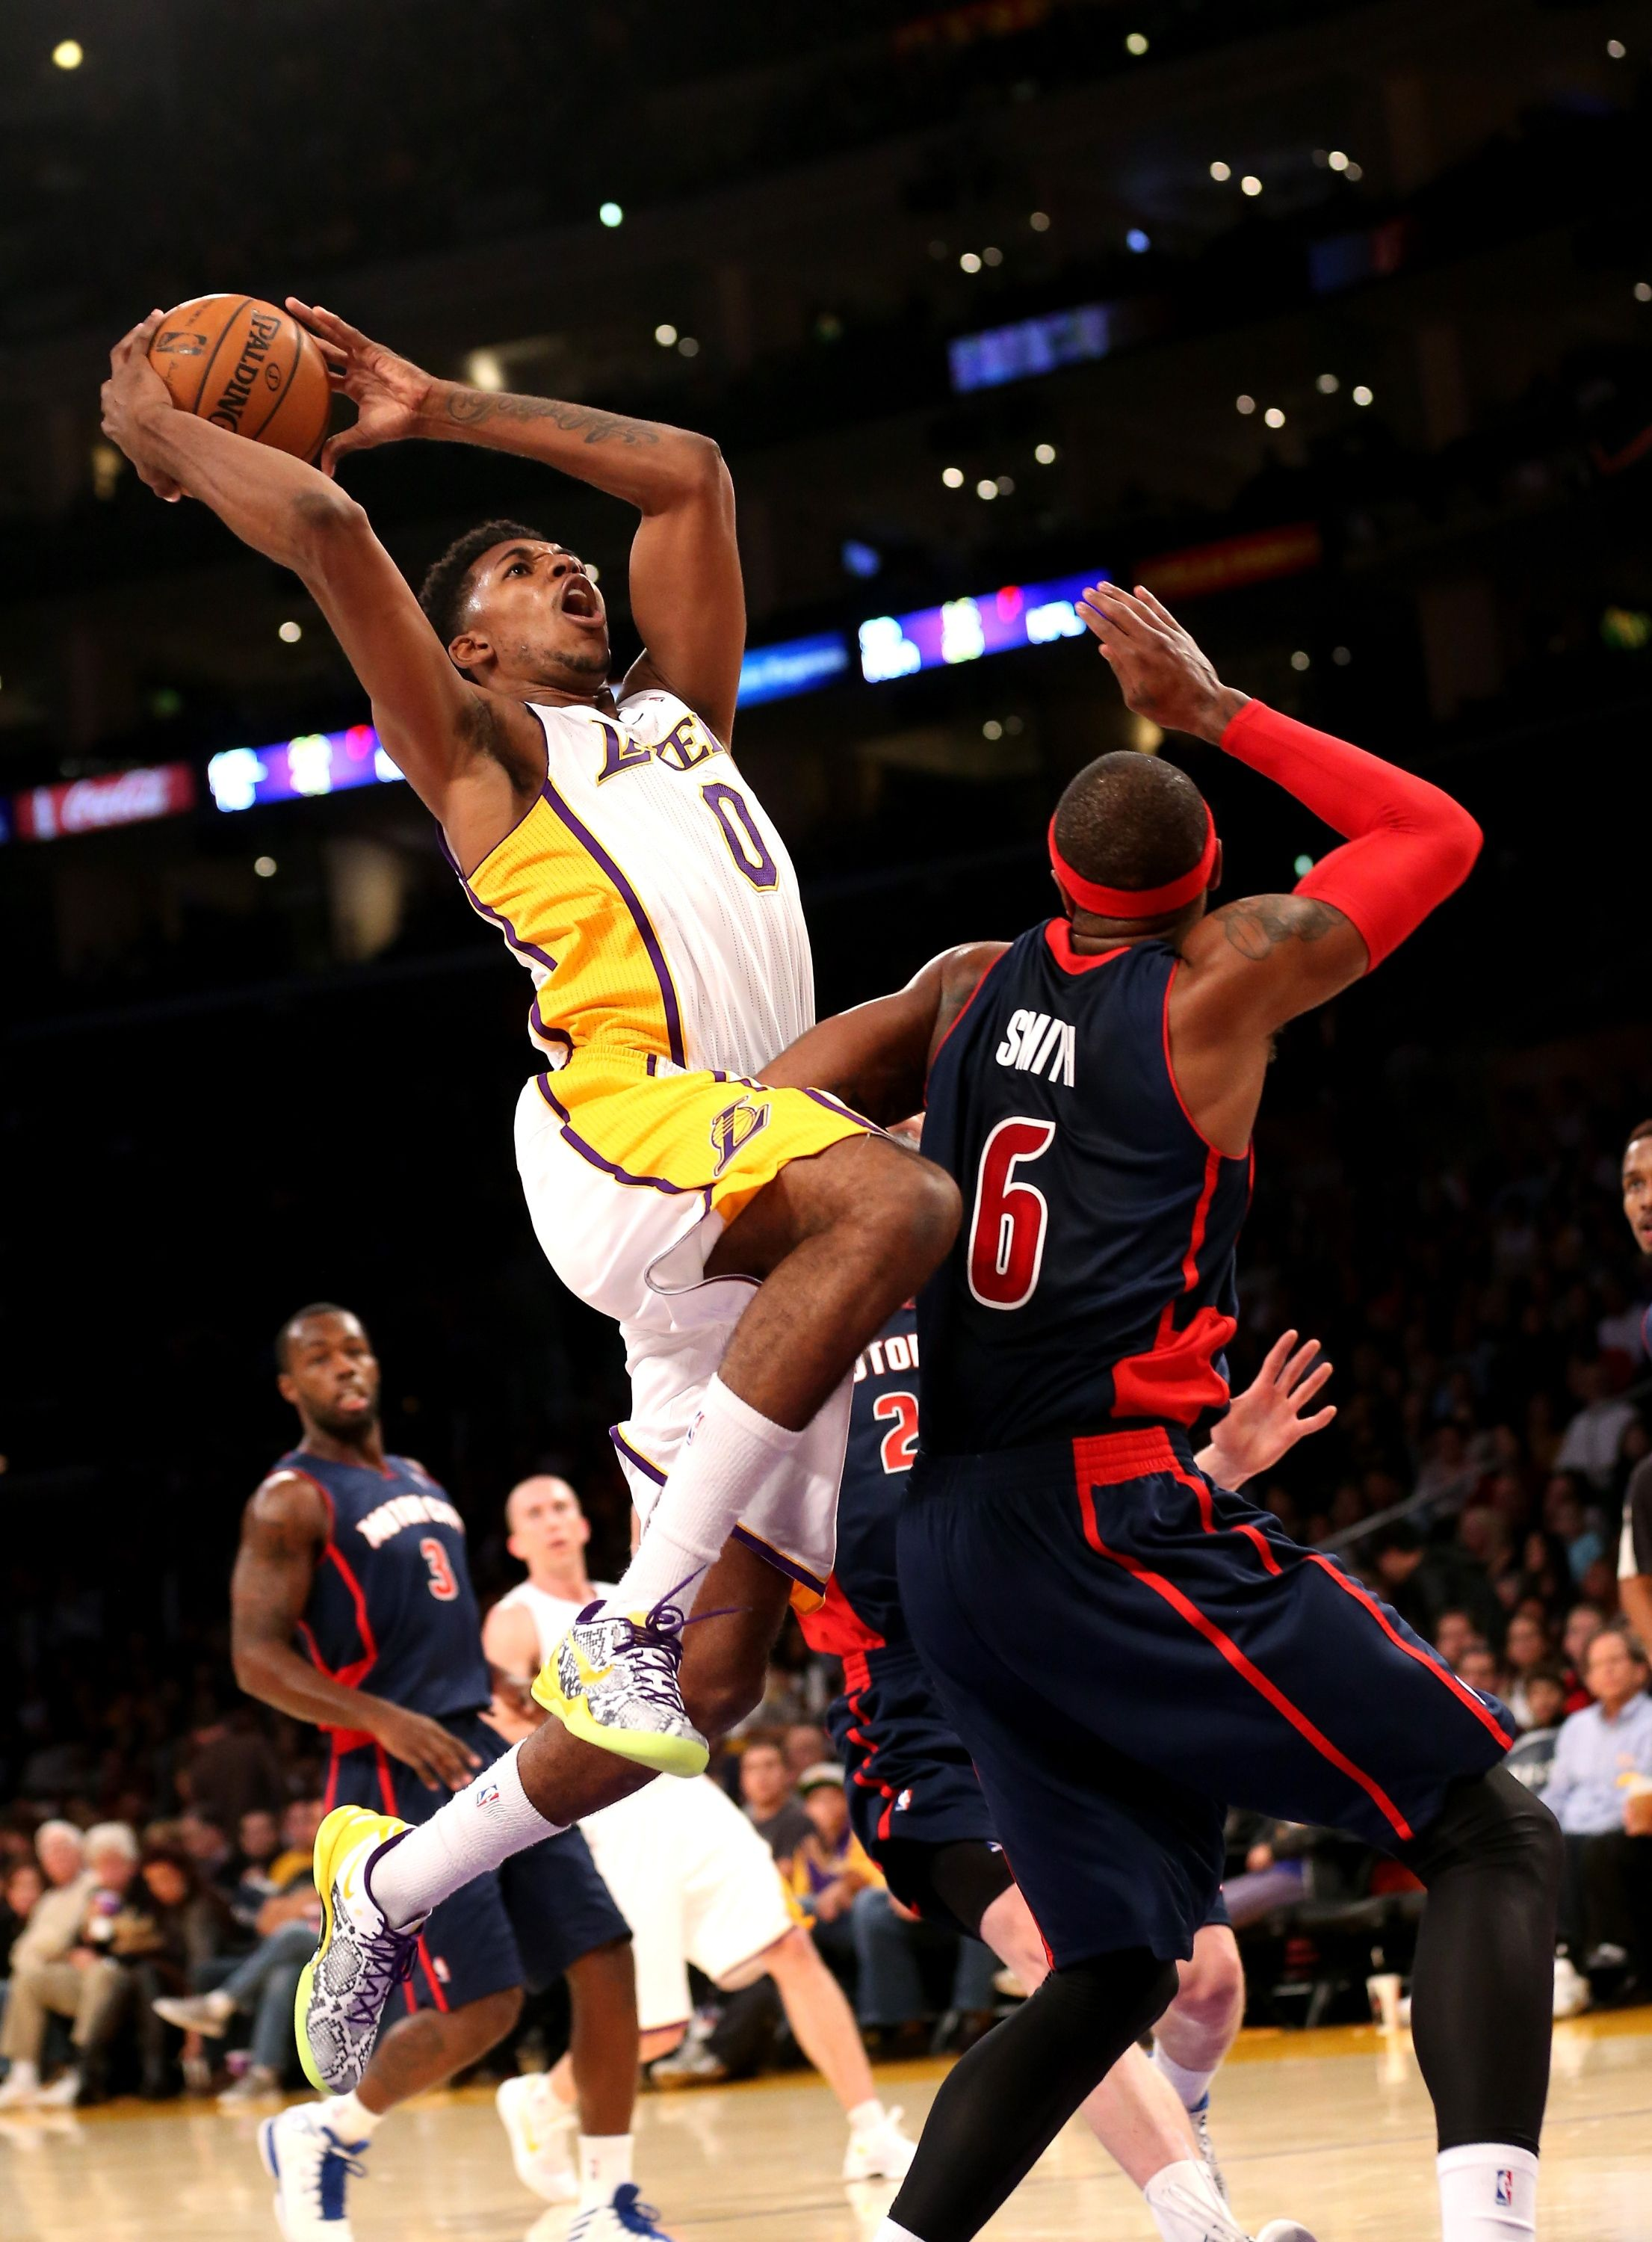 Los Angeles Ca November 17 Nick Young 0 Of The Los Angeles Lakers Goes Up For A Shot Ov Los Angeles Lakers Basketball Lakers Basketball Los Angeles Lakers